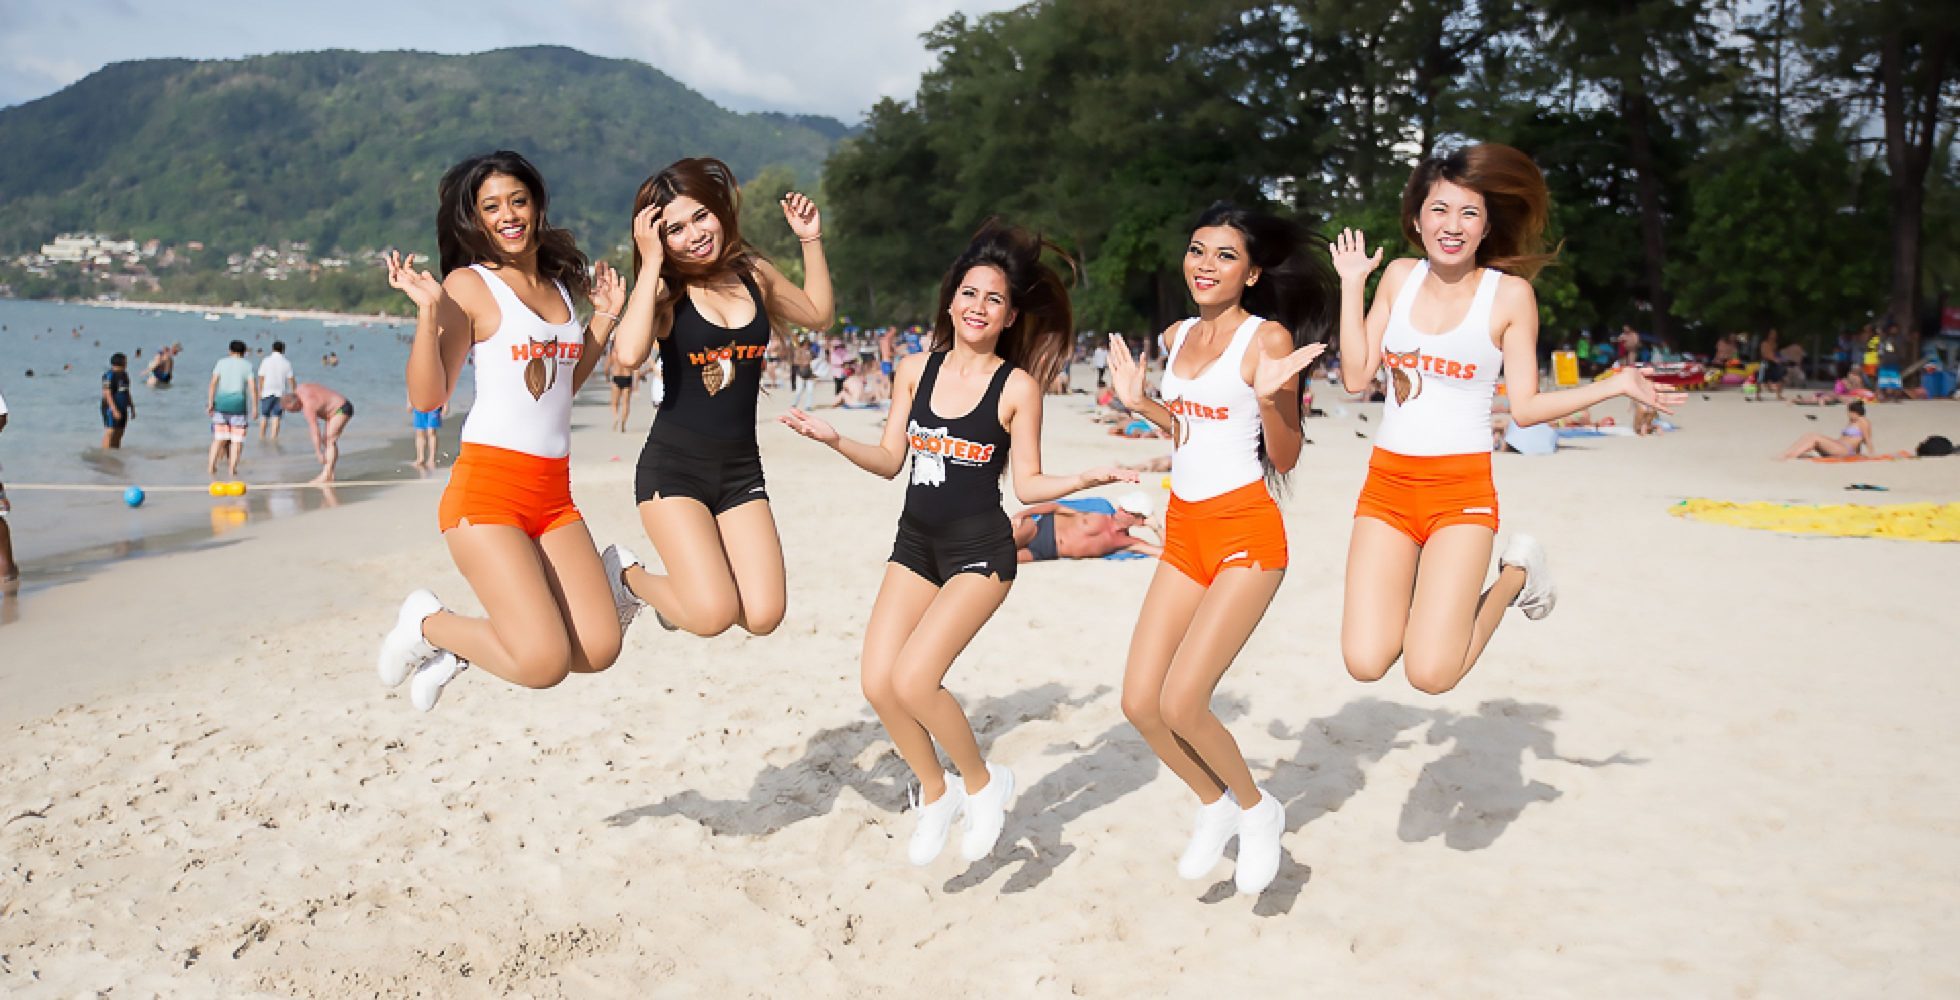 Hooters-Social-Media-Marketing